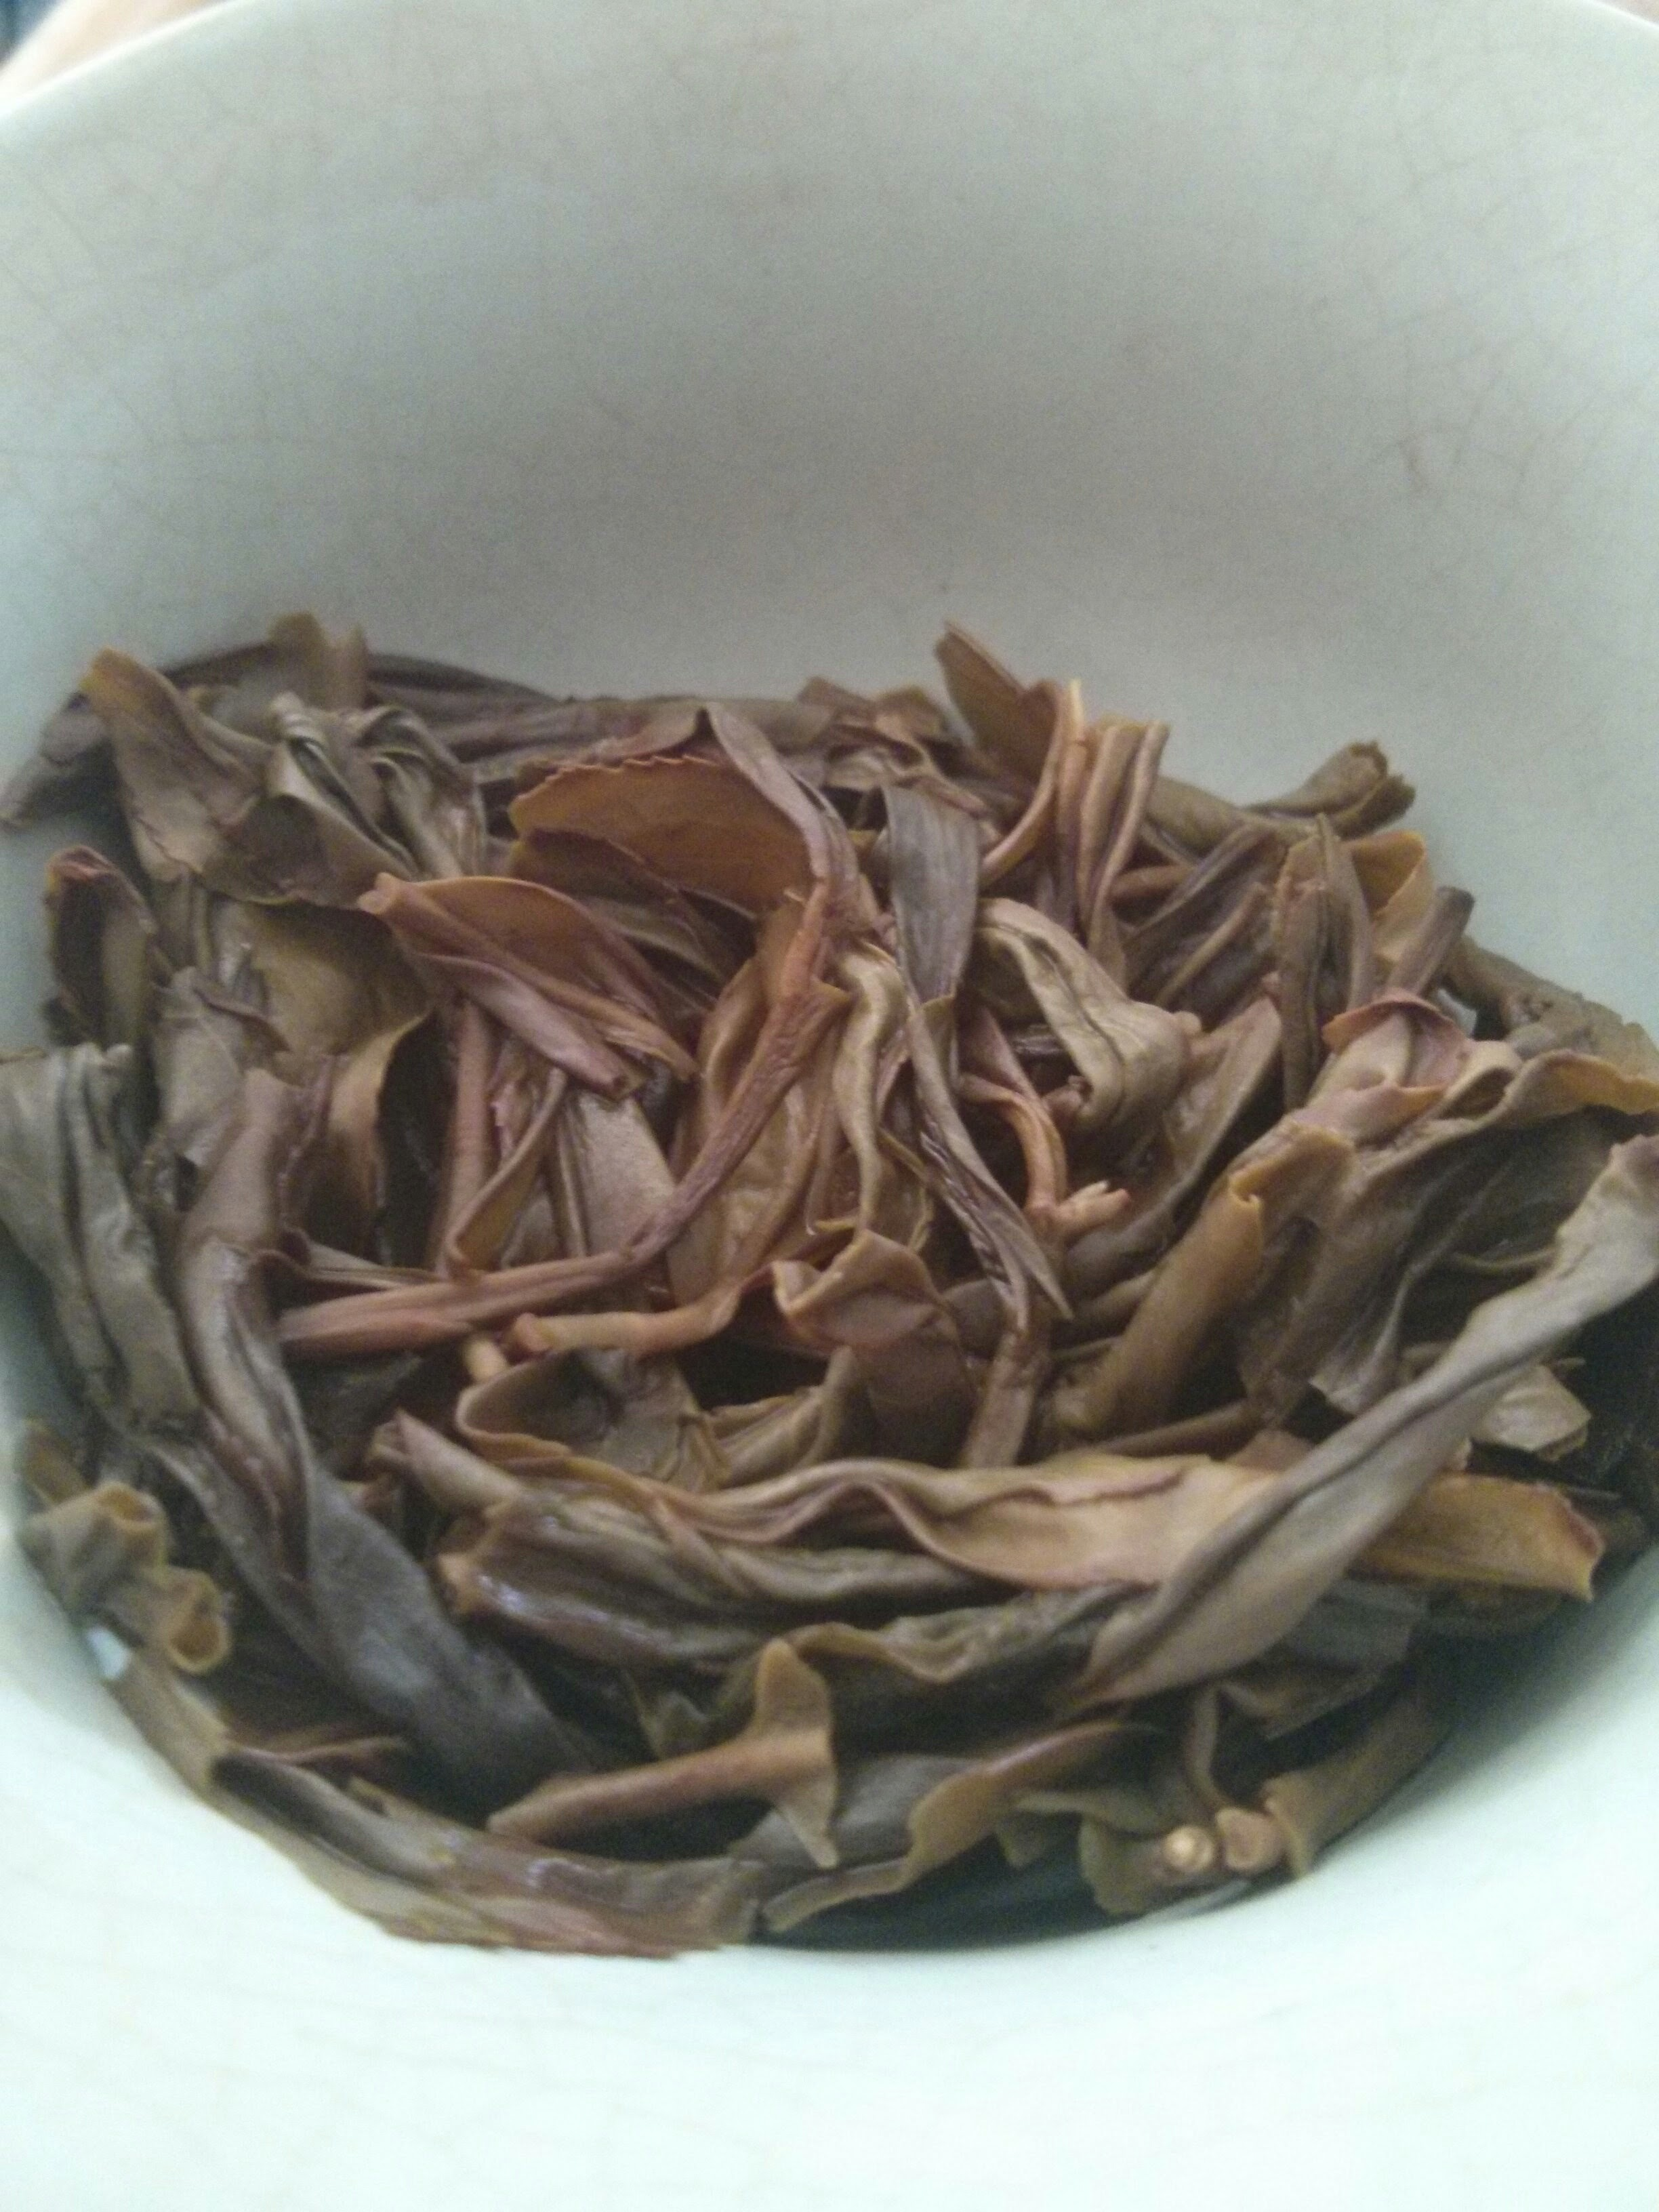 The brewed leaves were extremely pungent. They filled up the room with a sweet aroma, but at the same time it was almost musk-like